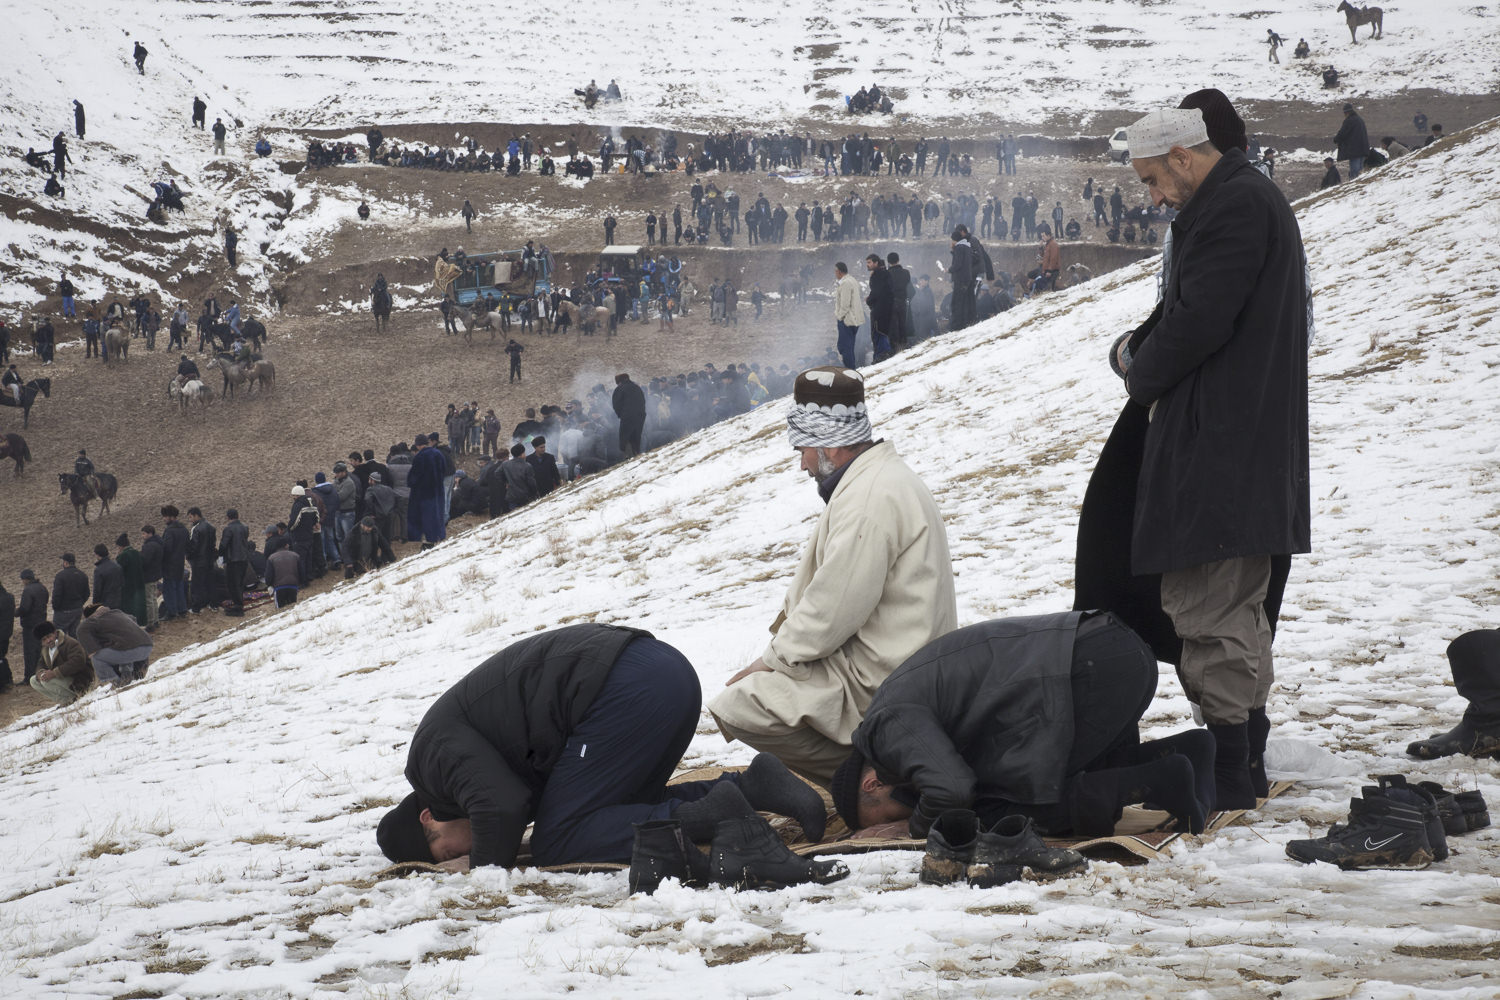 Using carpets won by the horseback riders, buzkashi fans near Hissor set aside time for afternoon prayers.